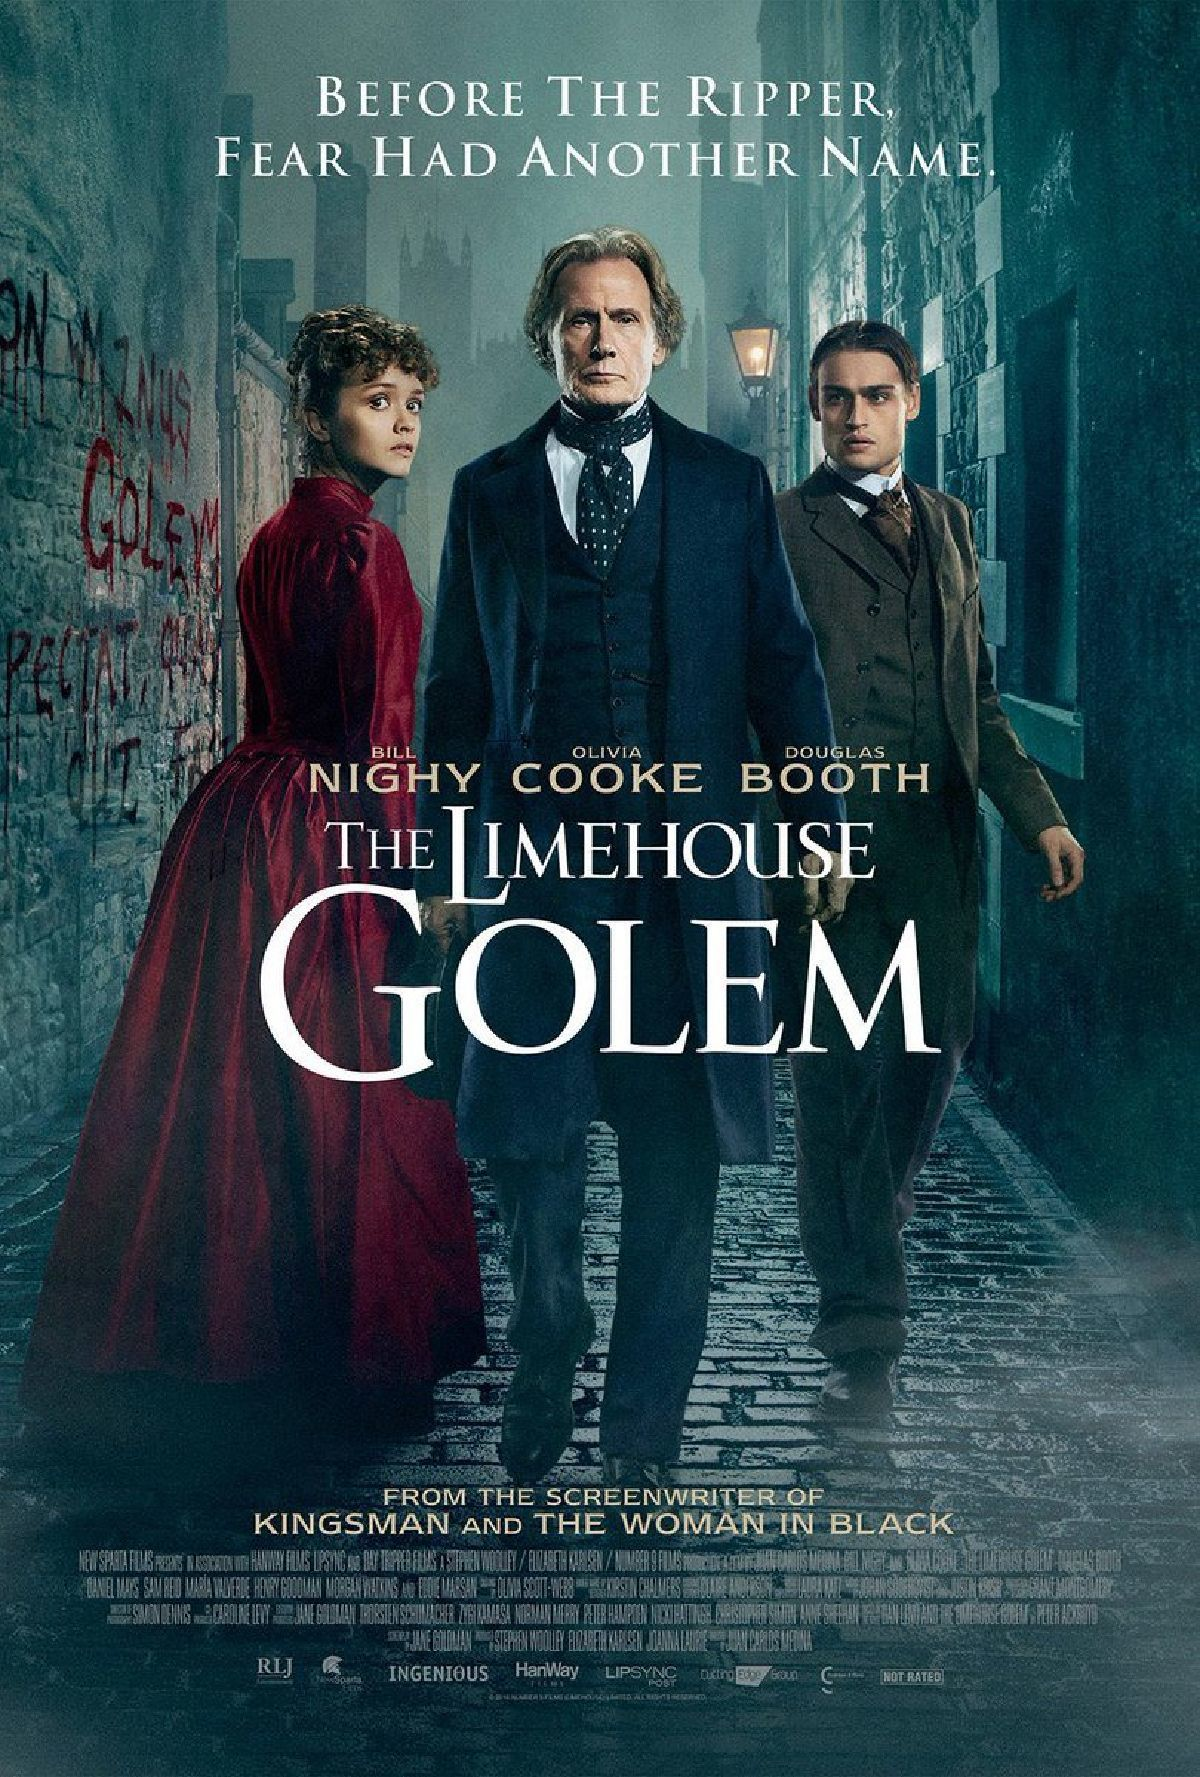 'The Limehouse Golem' movie poster